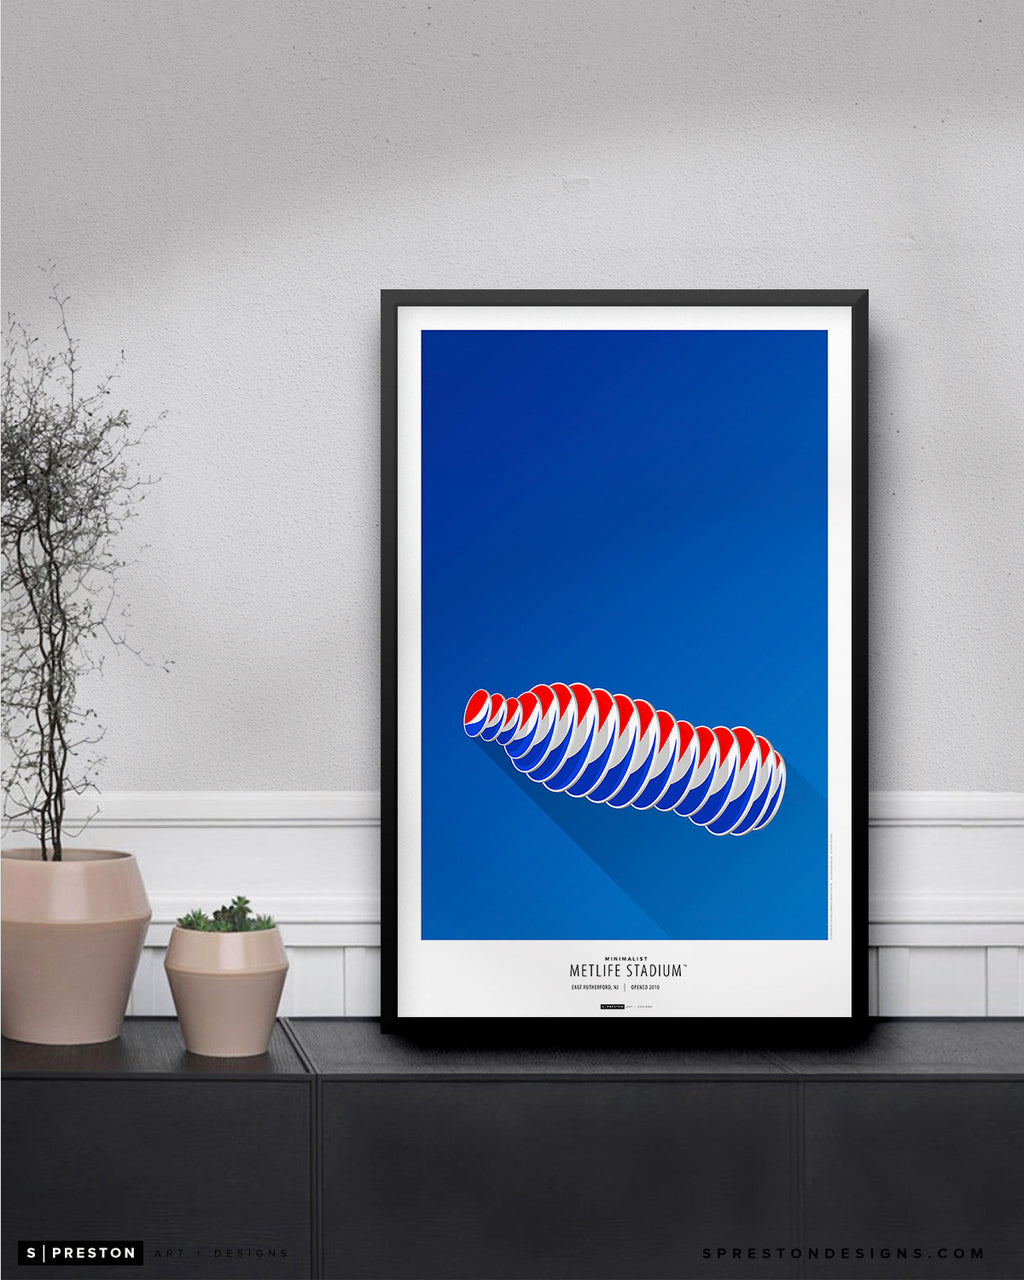 Minimalist MetLife Stadium Poster Print New York Giants - S Preston